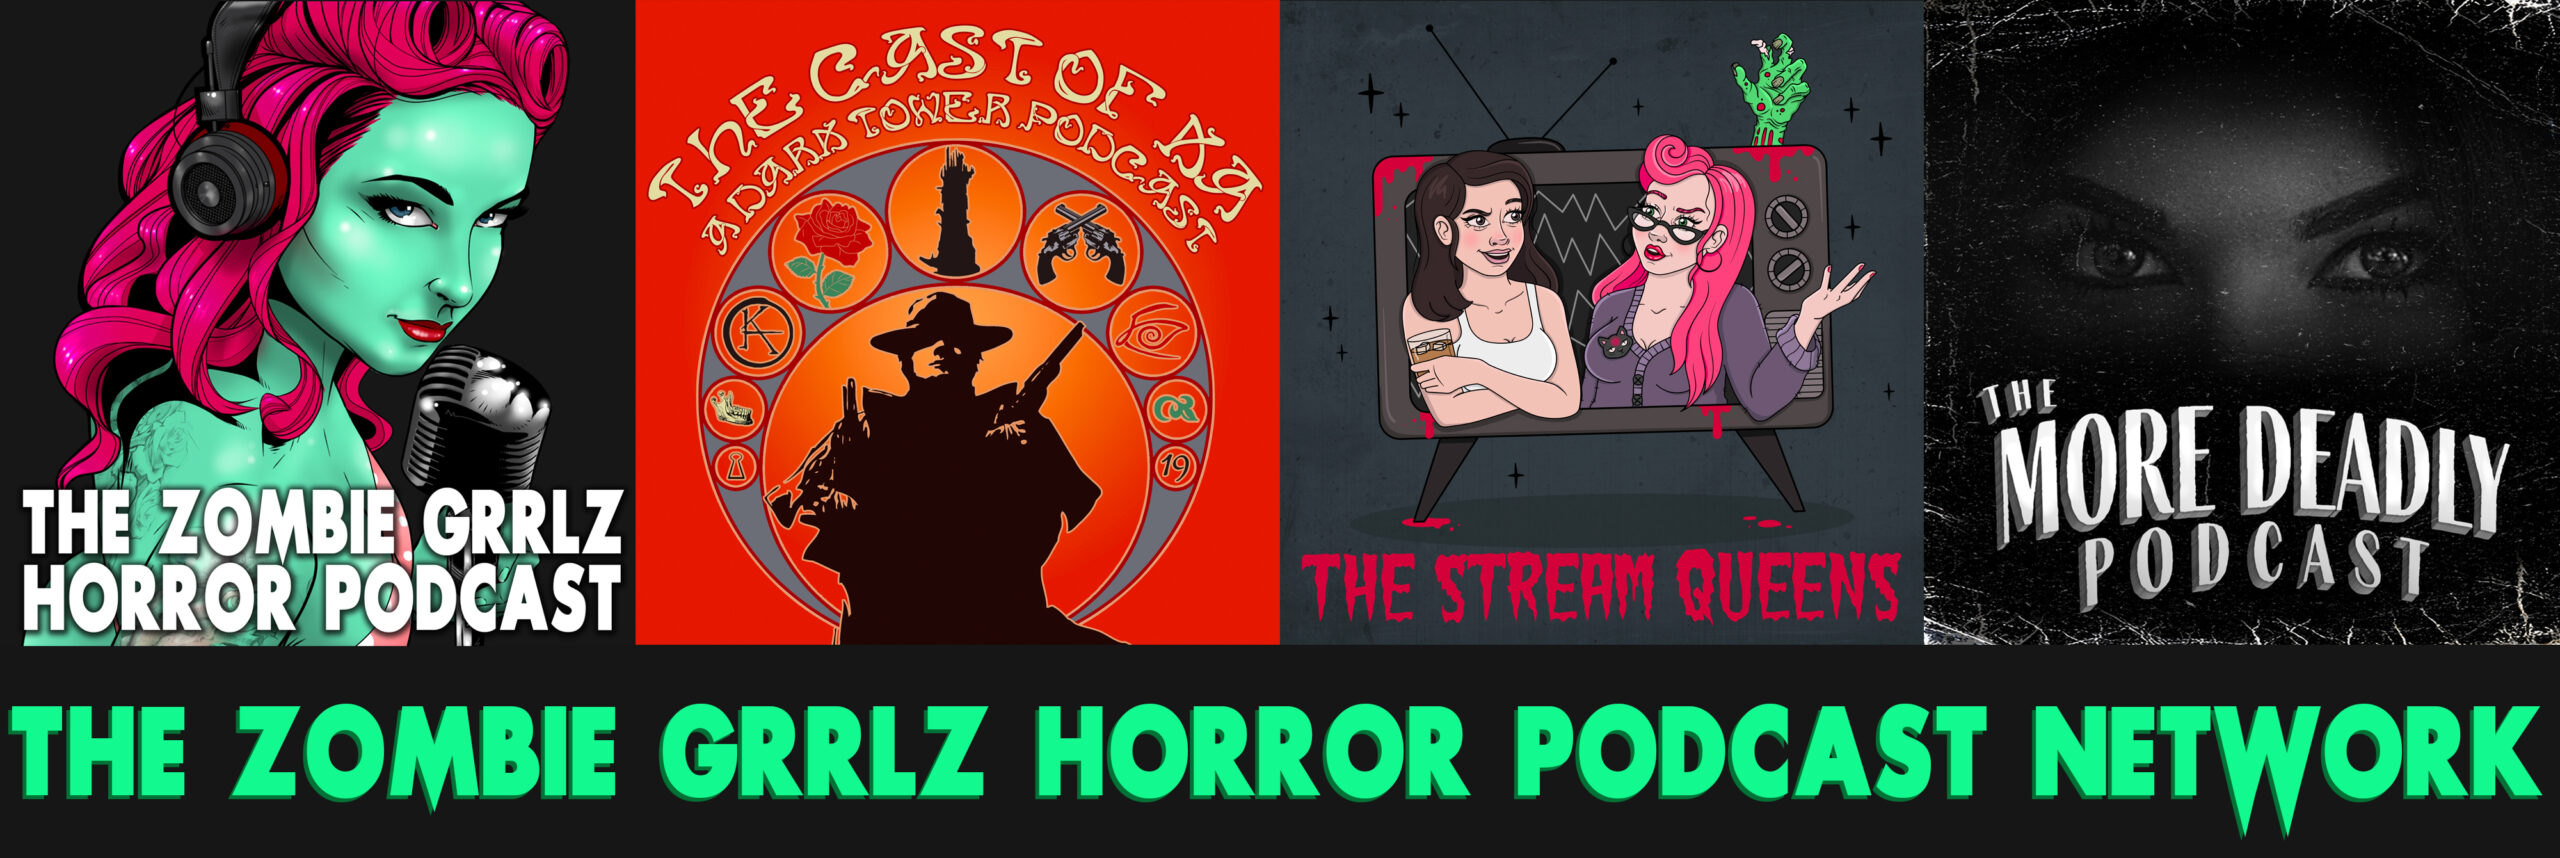 The Zombie Grrlz Horror Podcast